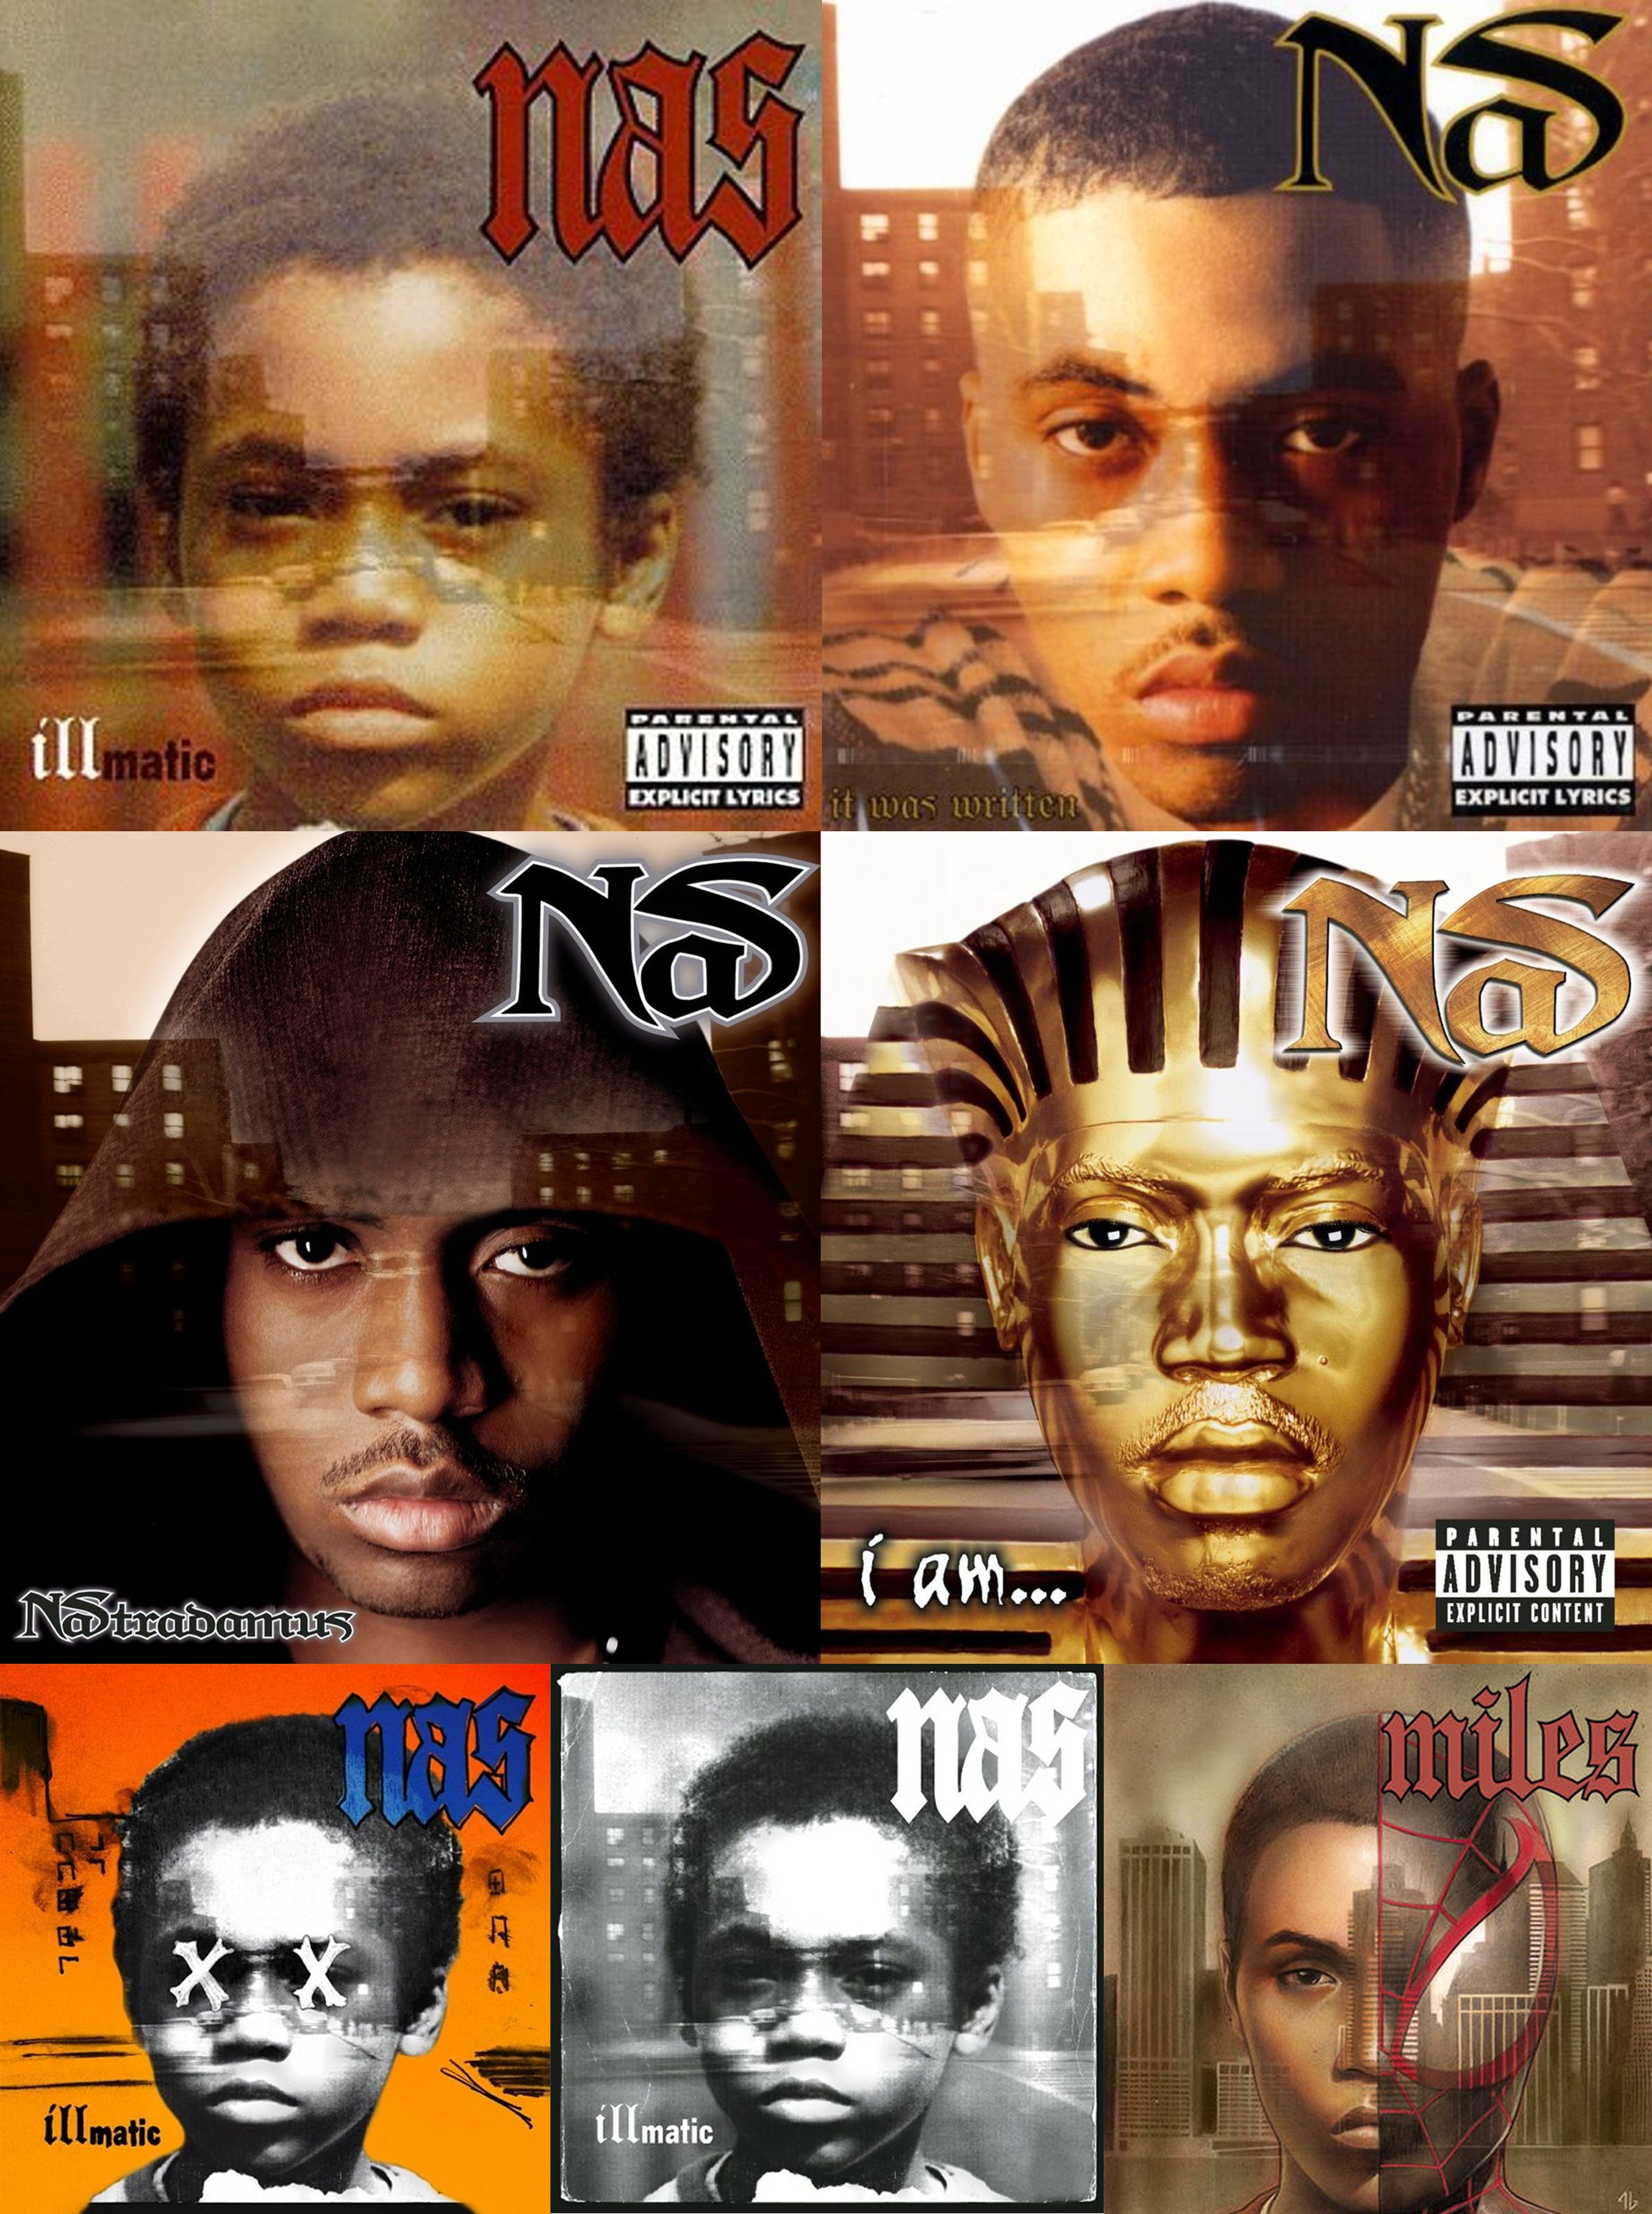 Nas album covers 1994 - 1999 [Illmatic, It Was Written